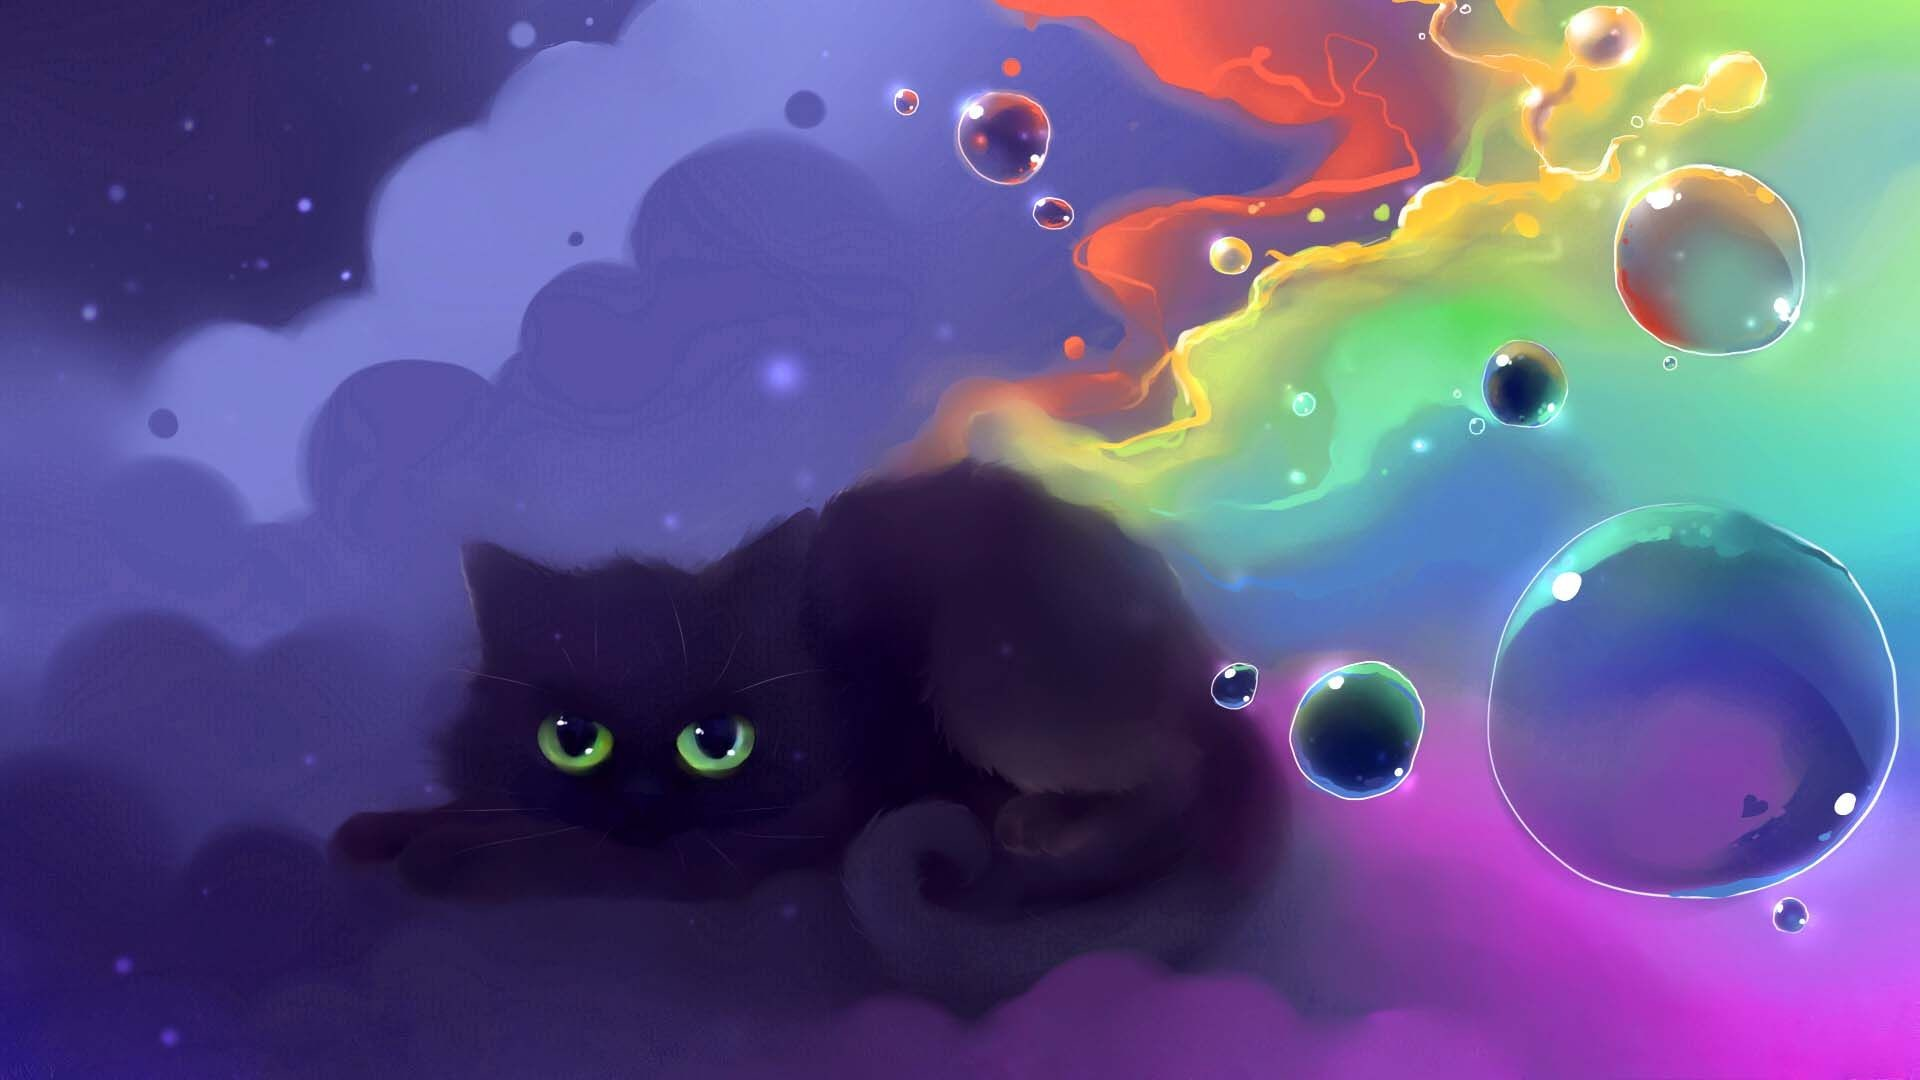 1920x1080 Katzen images Kitty Cat HD wallpaper and background photos